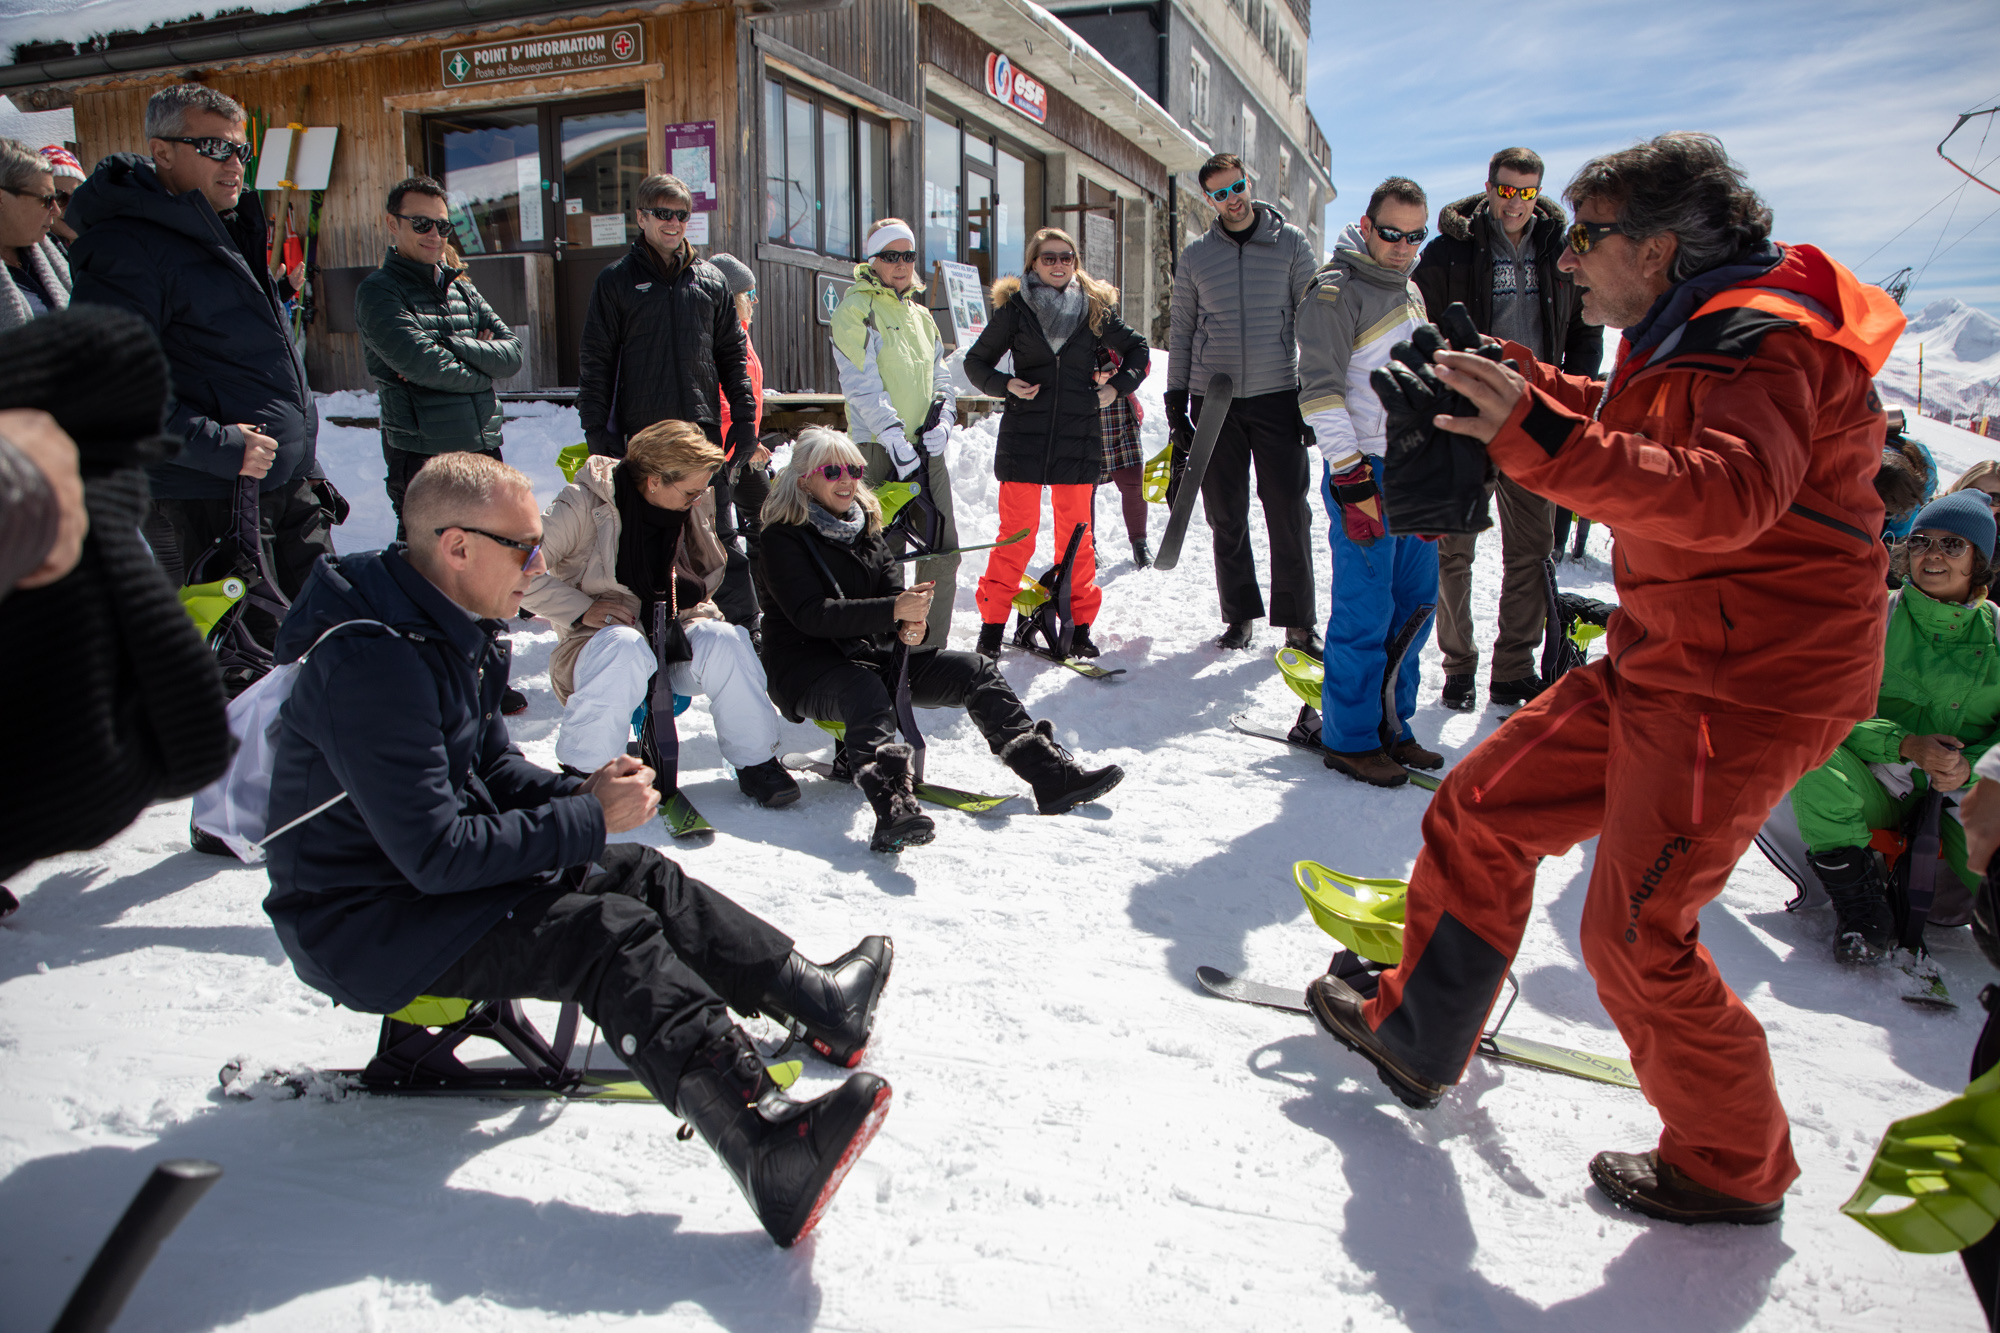 Break_The_Ice_LaClusaz_2019_web-6649.jpg